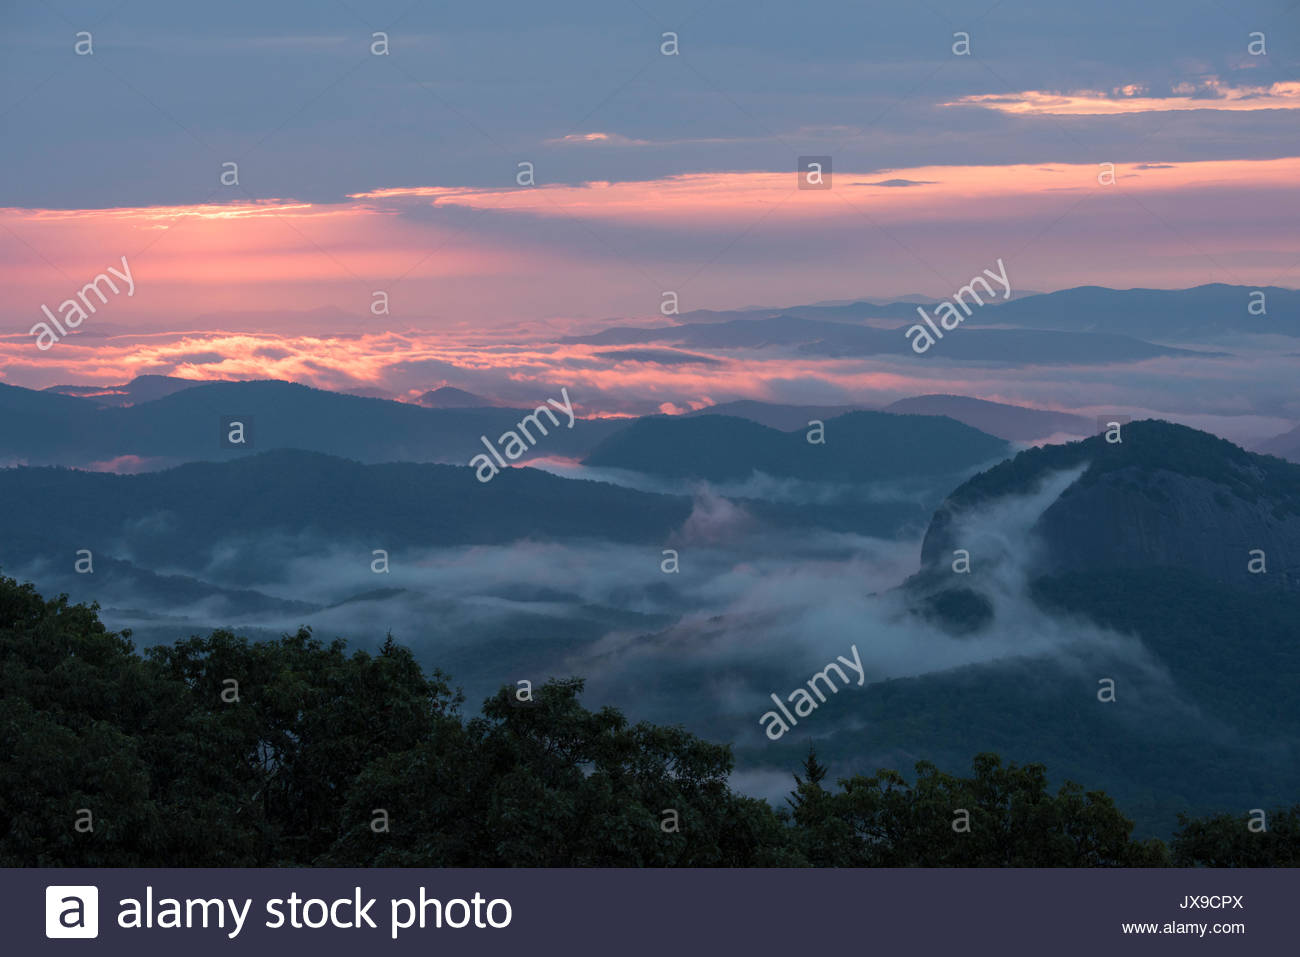 Sunrise looking towards Looking Glass Rock from the Looking Glass Overlook on the Blue Ridge Parkway in the Pisgah National Forest. - Stock Image